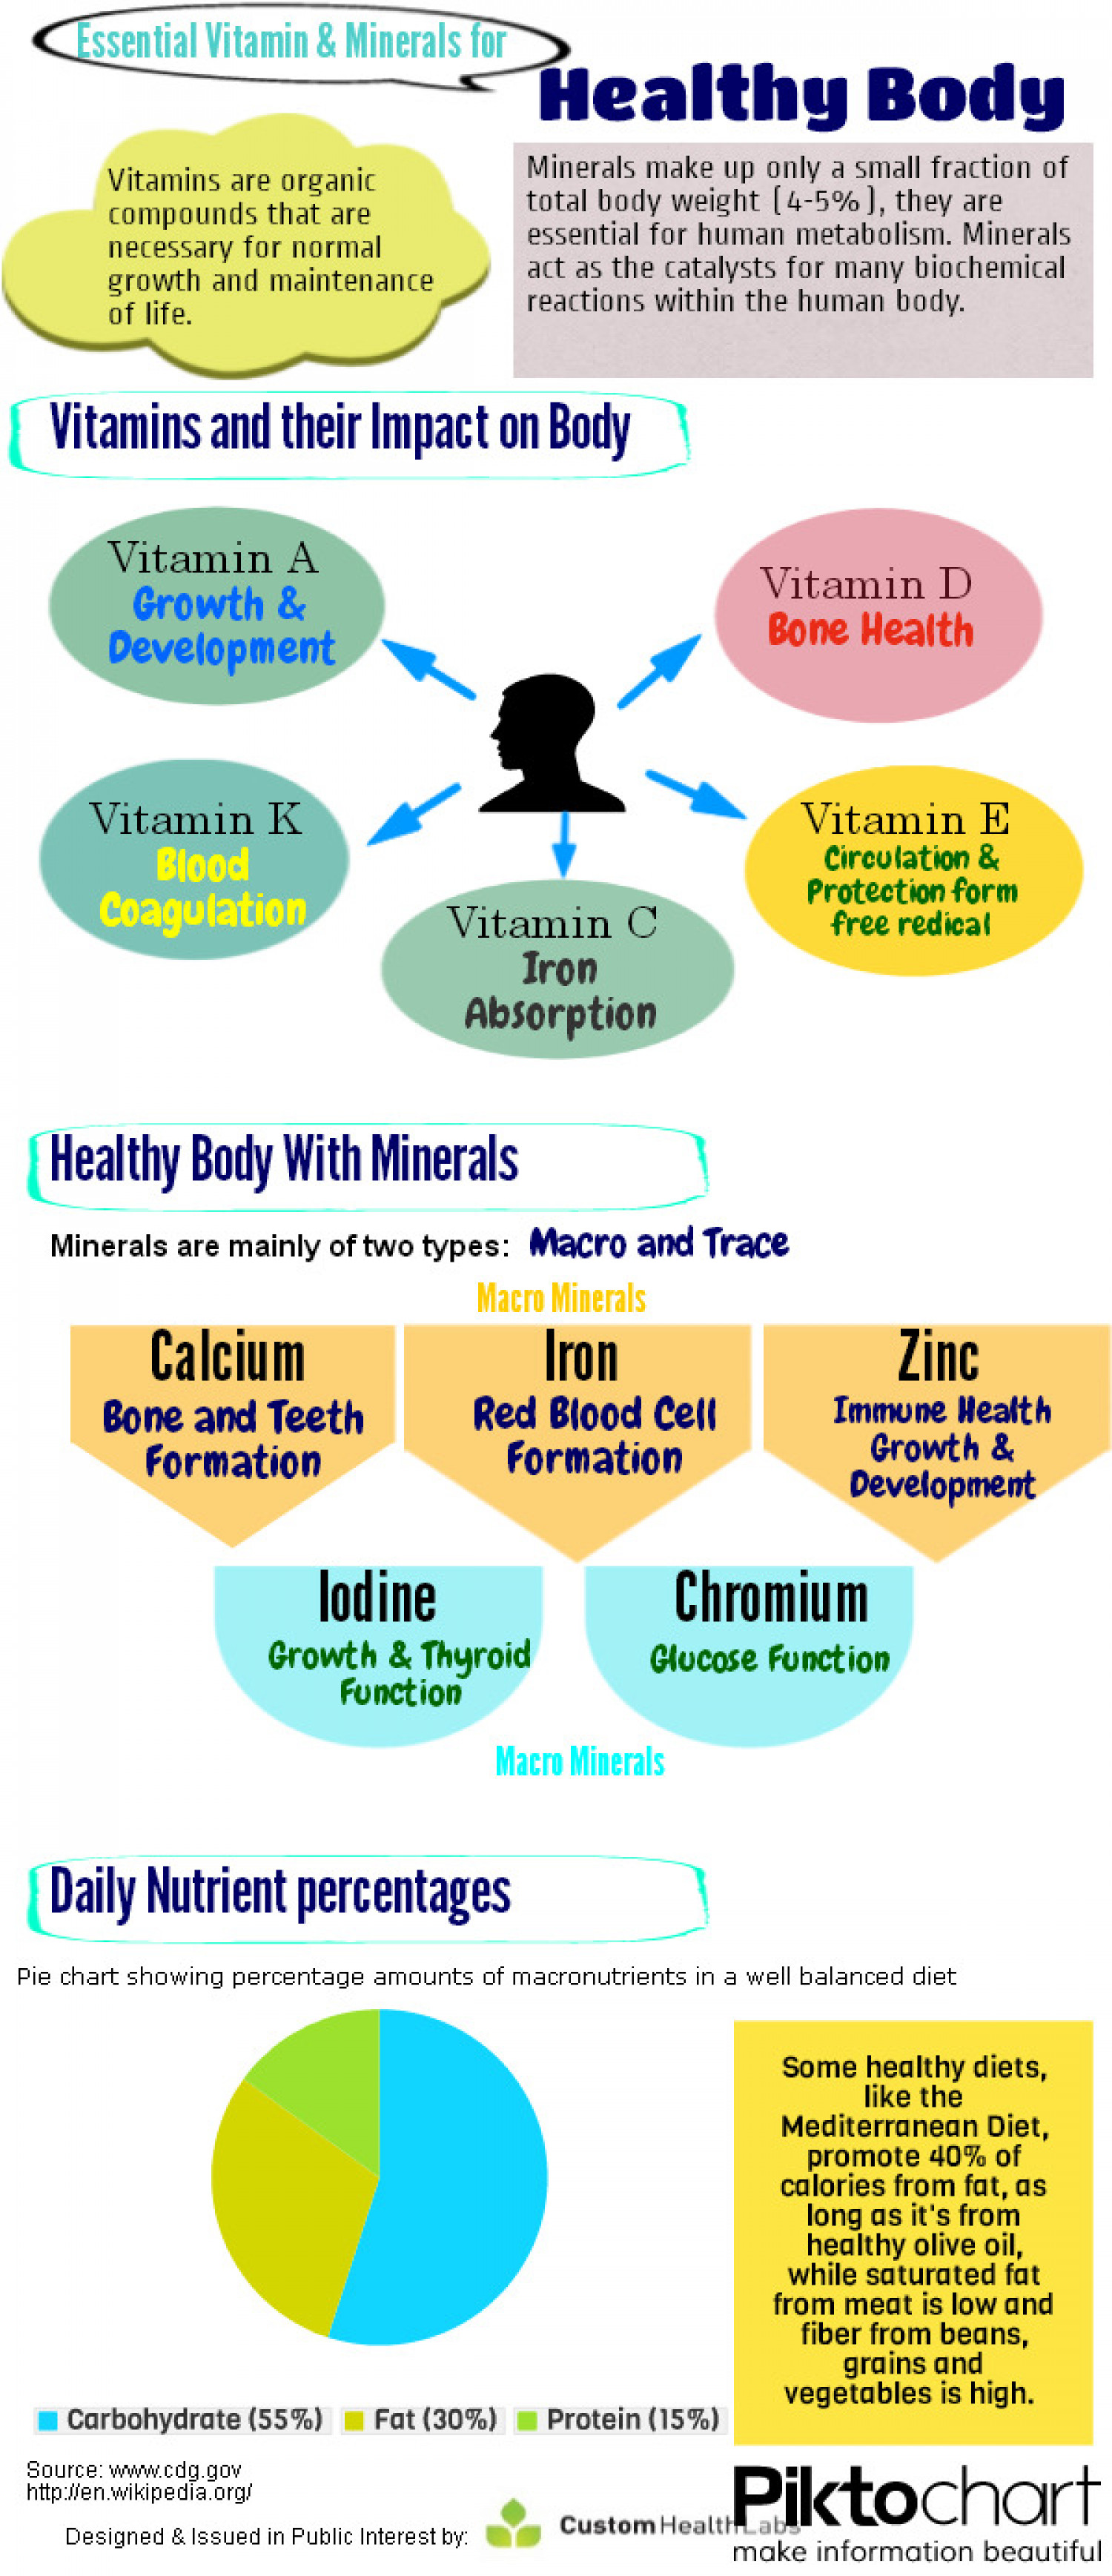 Vitamins & Minerals for Healthy Body Infographic